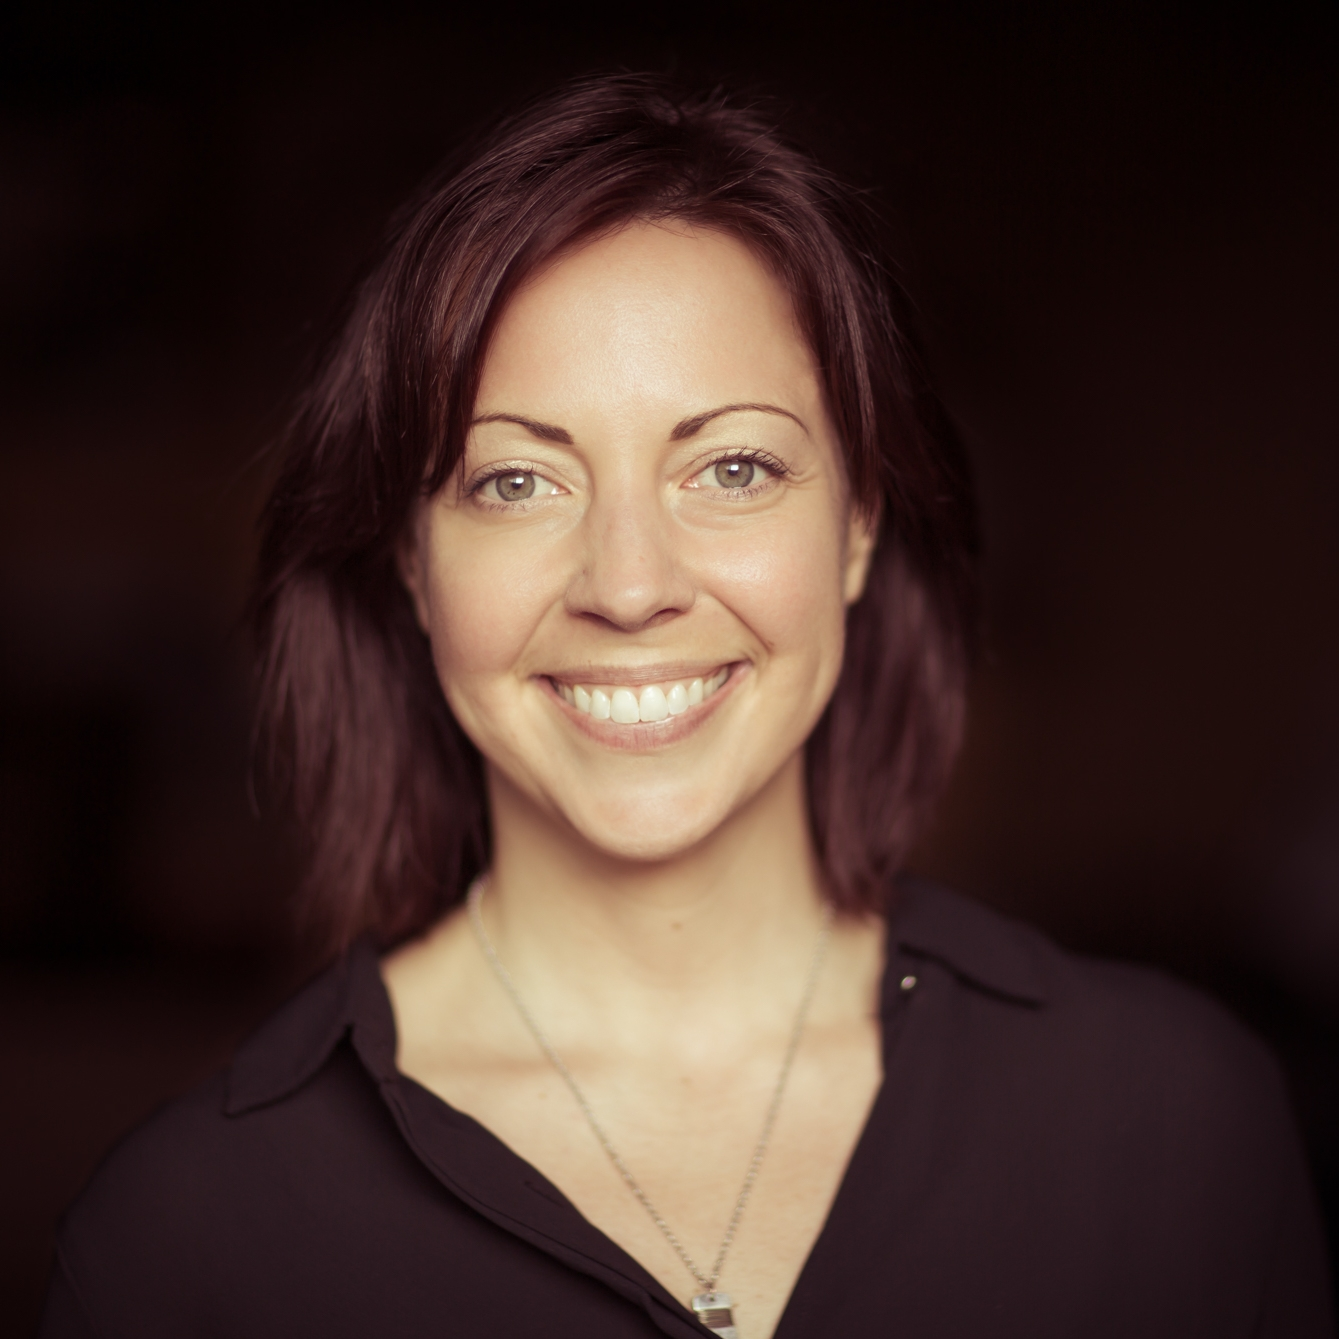 """Stefanie Vale - Communications ManagerStefanie assists with all aspects of the process, whether it's helping with the organizing of all the moving pieces at a location, facilitating the planning of a shoot, or generally assisting our clients with questions or specific needs. In addition to her serving as an """"air-traffic controller"""" during the planning and execution of the production, she also assists with videography, curation of stories, and video editing. Stefanie brings over fifteen years of managerial and entrepreneurial experience, and is dedicated to ensuring the highest quality services to clients."""